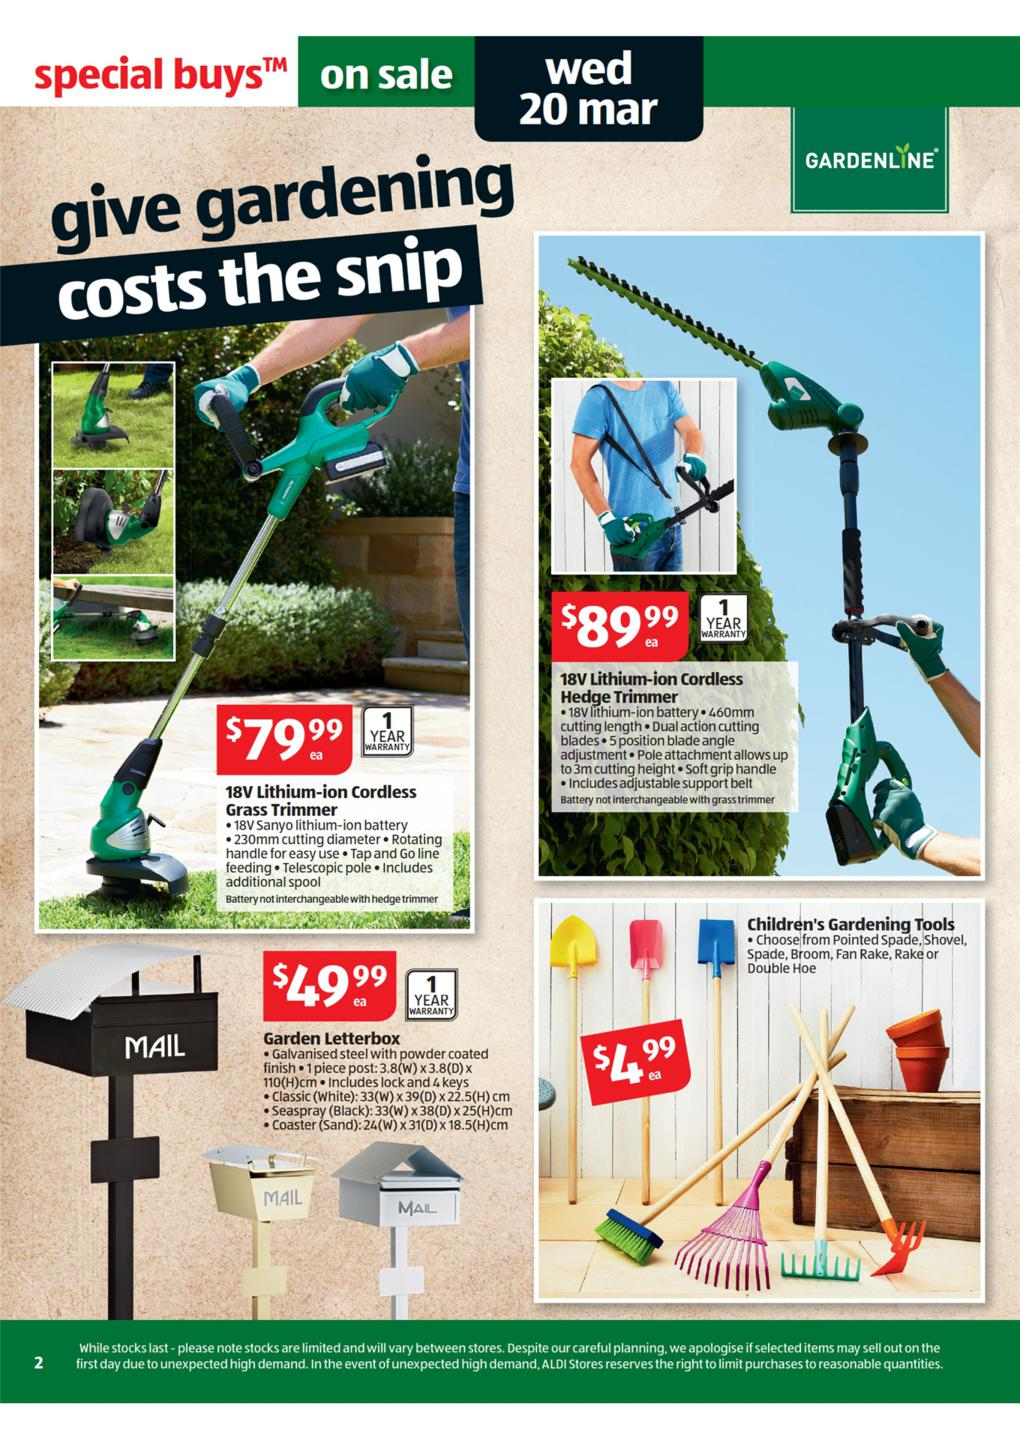 Aldi catalogue special buys week 12 2013 page 2 for Aldi gardening tools 2016